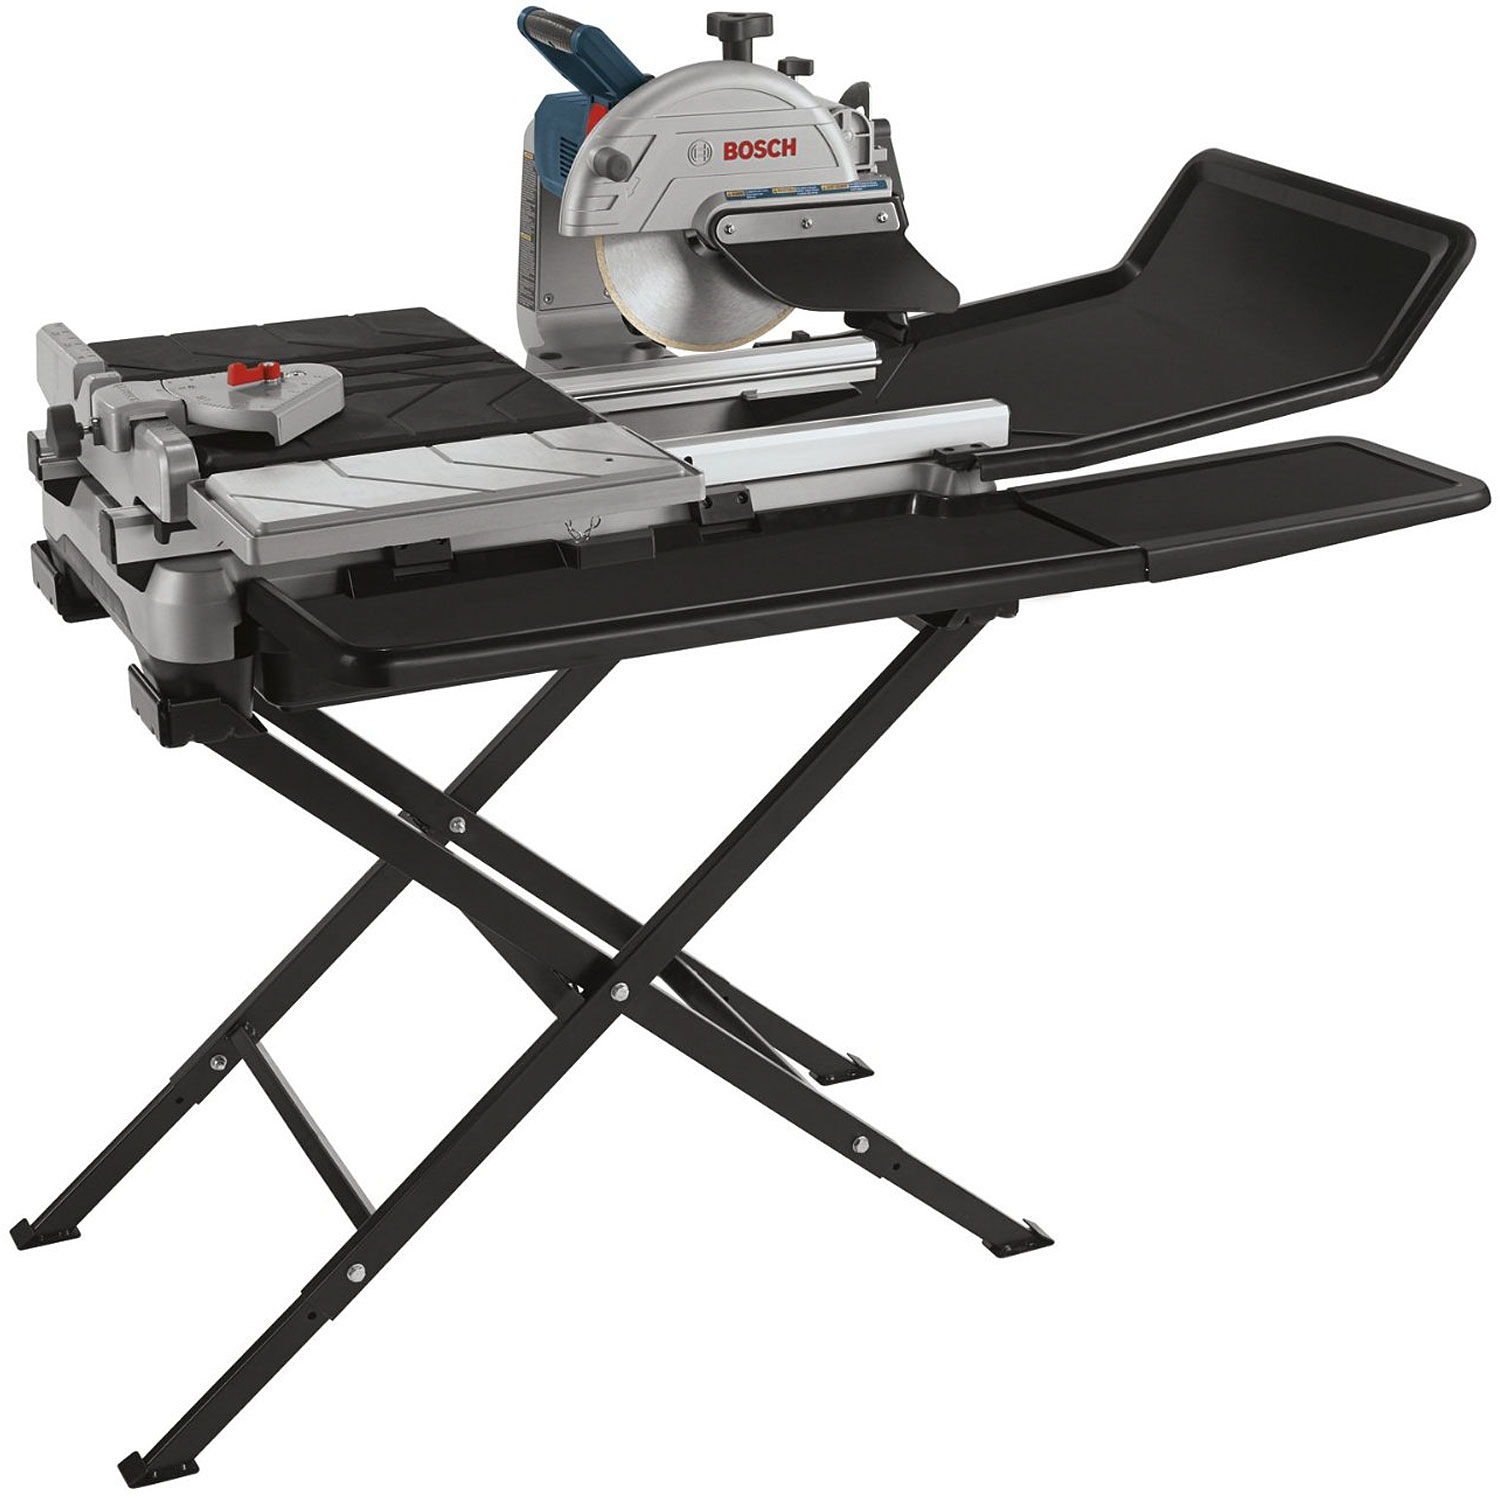 Bosch 10 Wet Tile Stone Saw W Folding Stand Tc1007